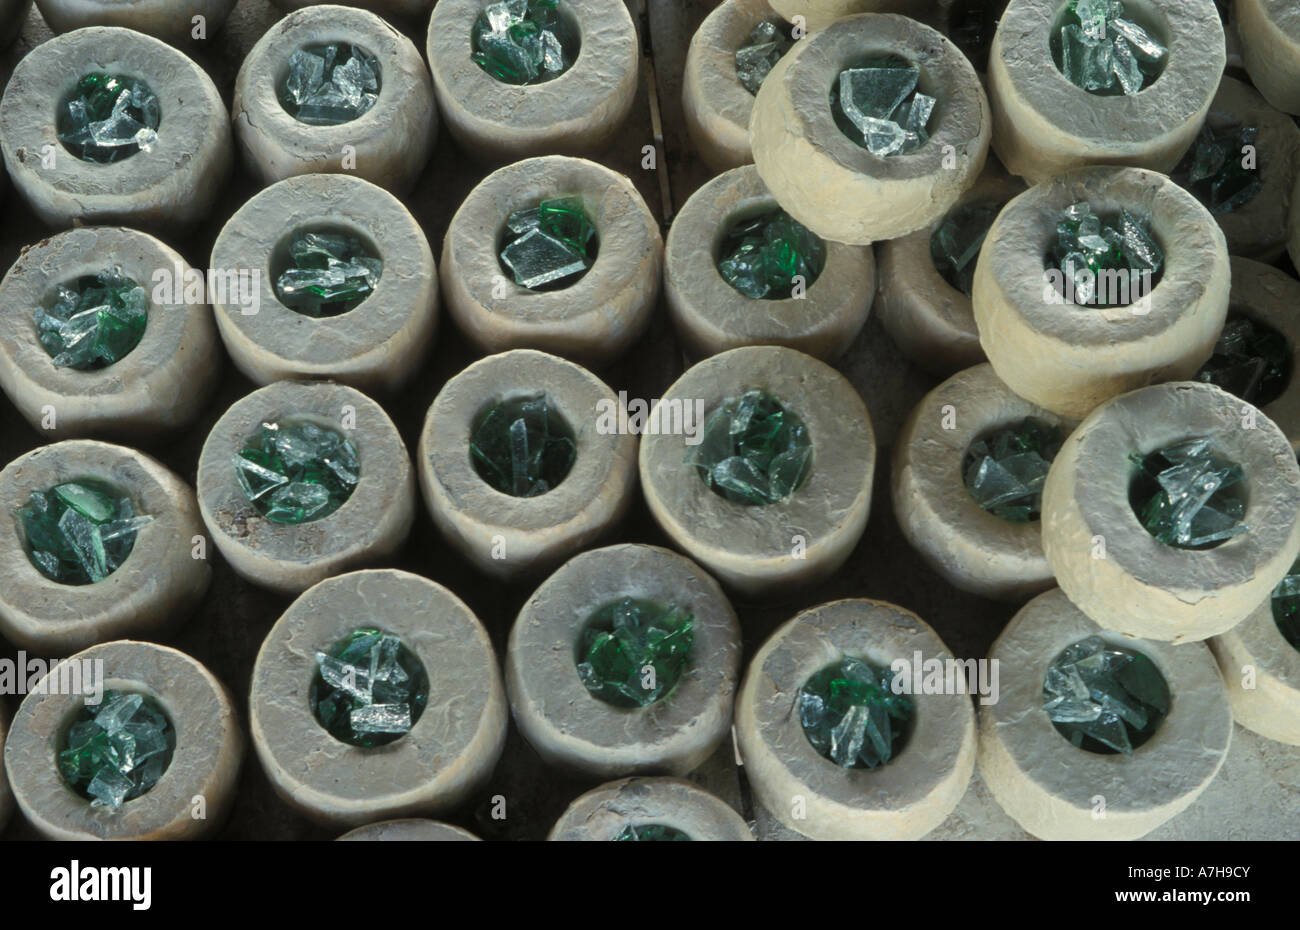 Cedi S Bead Factory Moulds Used For Baking Glass Beads Krobo Stock Photo Alamy